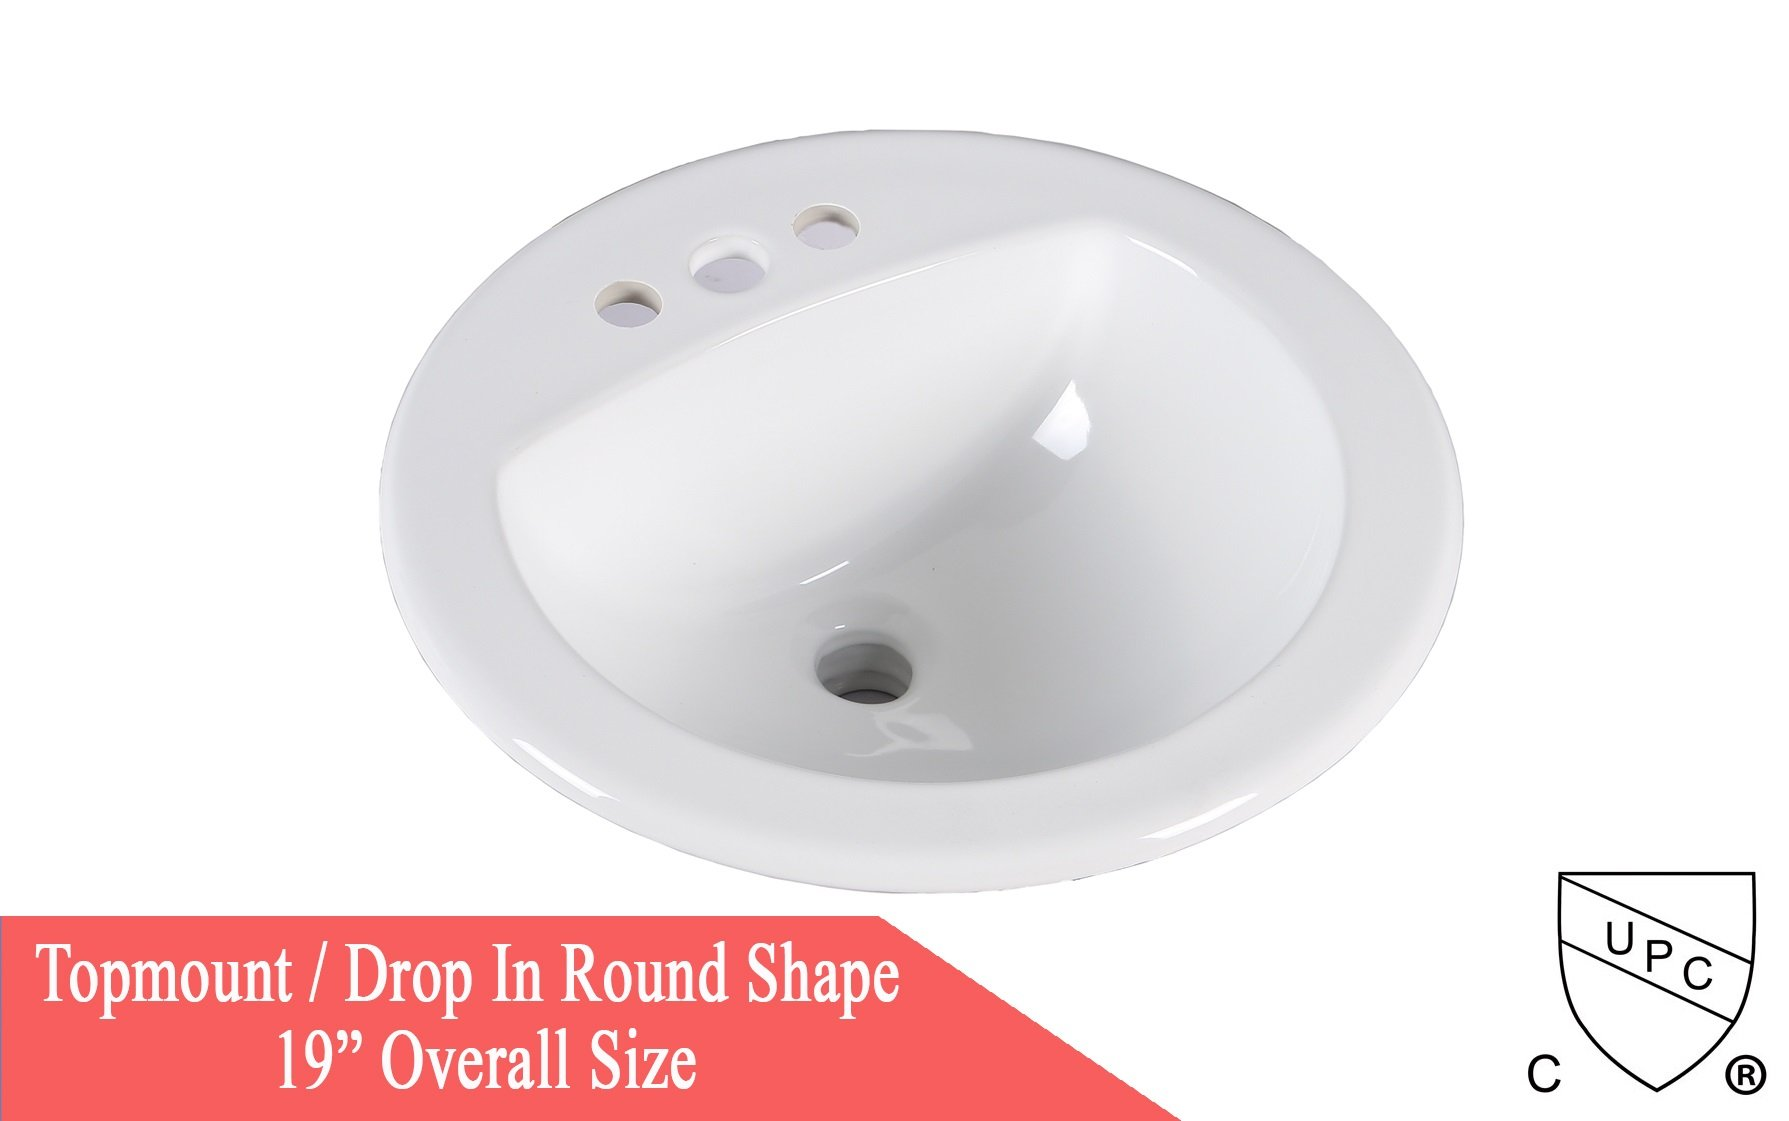 KINGSMAN 19 Inch Round Topmount / Self Rimming / Drop In Vitreous Ceramic Lavatory Vanity Bathroom Sink Pure White by KINGSMAN